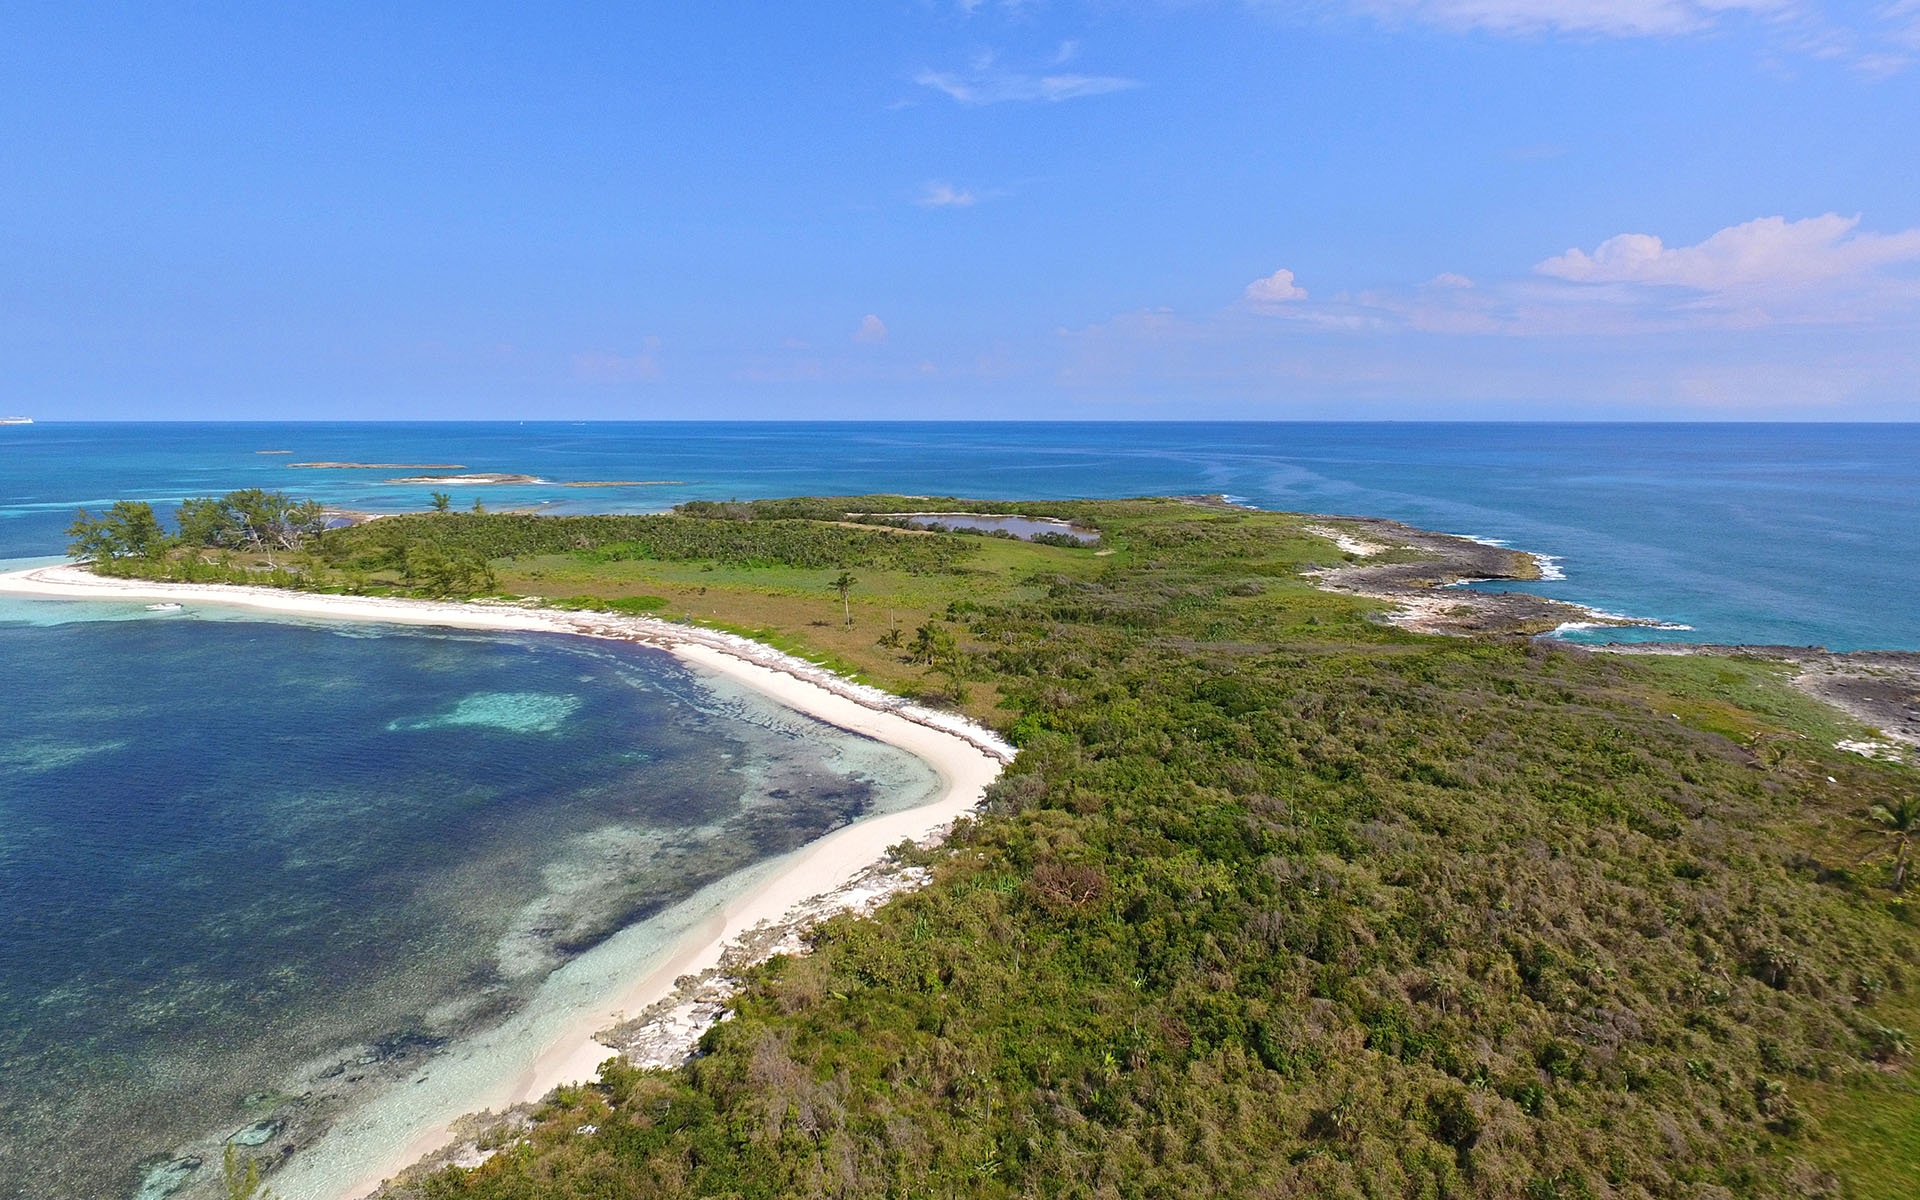 Isola Privata per Vendita alle ore Petite Cay, Private Island, Berry Islands - MLS #29563 Berry Islands, Bahamas